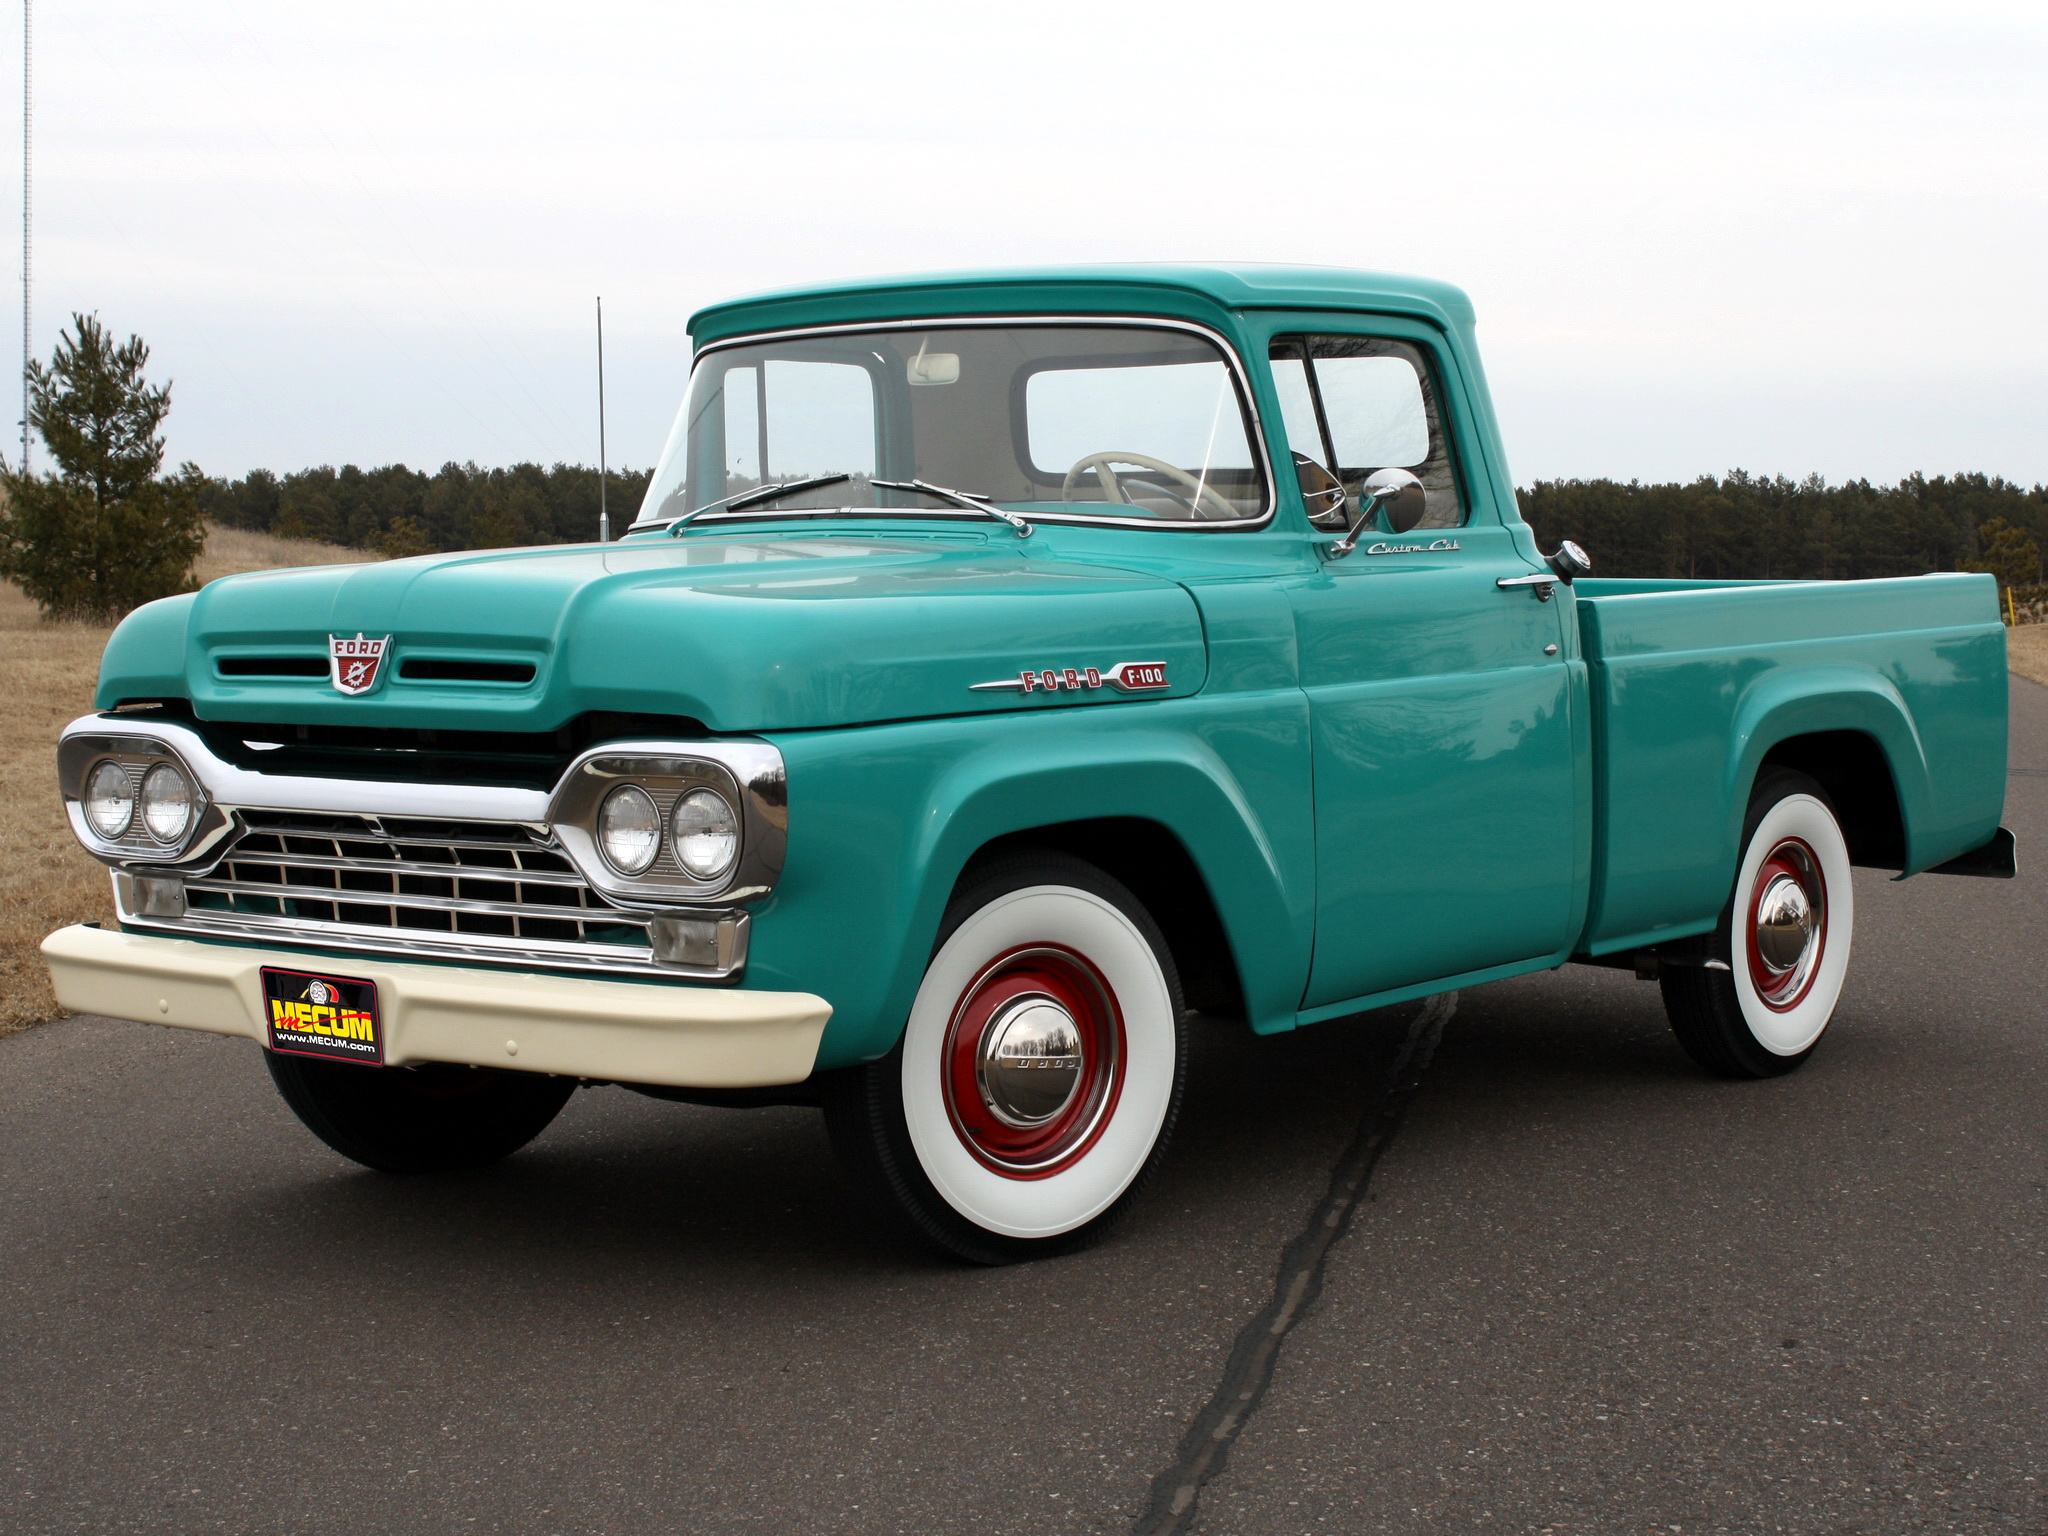 1960 ford f100 also old antique cars moreover 1960 ford f100 wiring 1960 ford f 100 custom cab styleside pickup classic 1960 ford f100 also old antique cars moreover 1960 ford f100 wiring